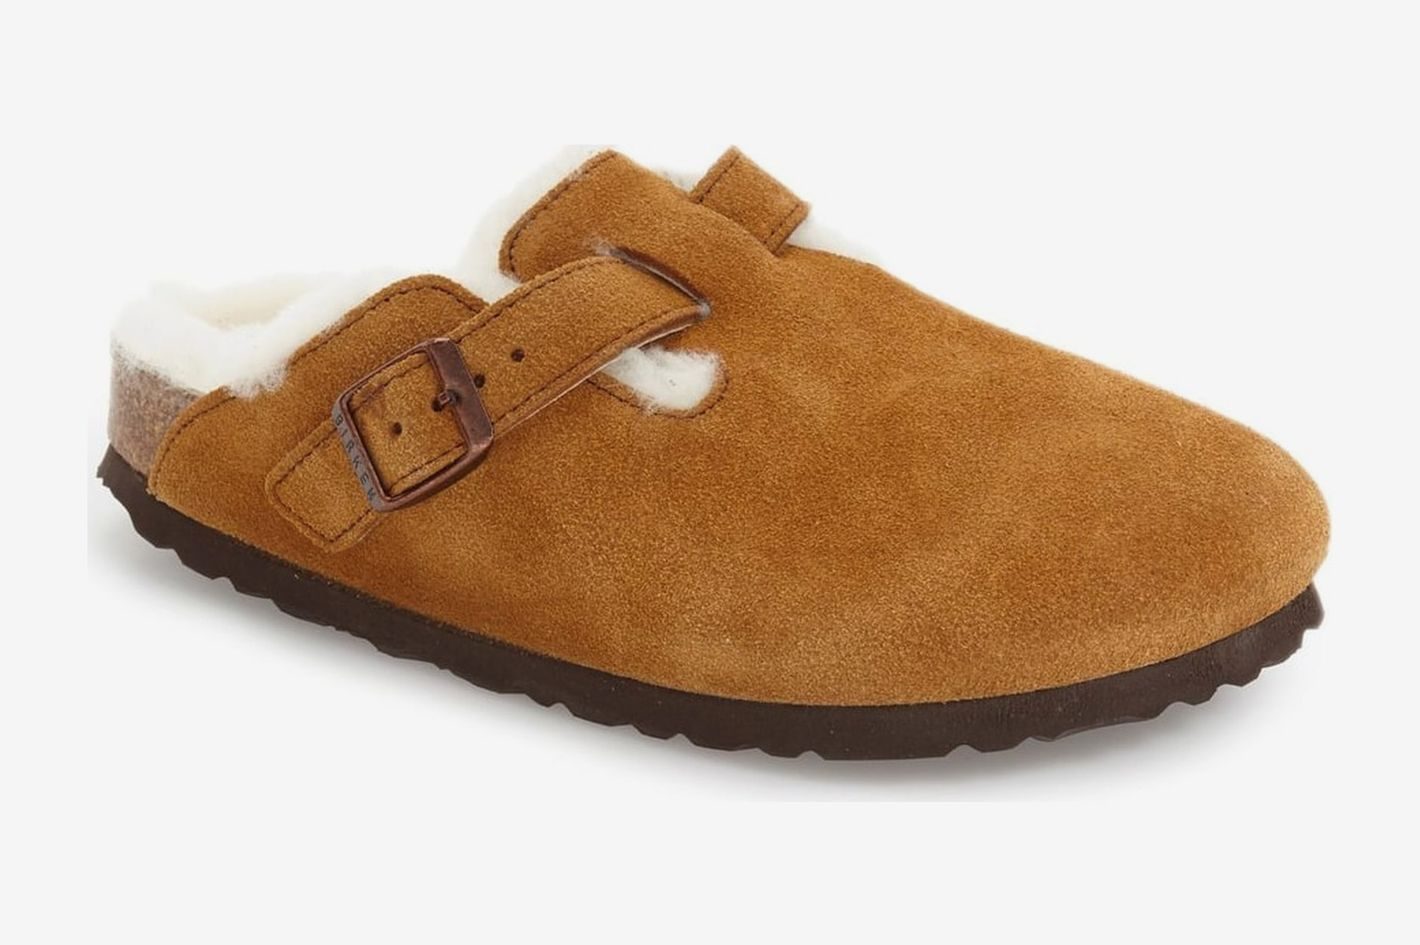 f3317db04a6c Birkenstock Boston Genuine Shearling Lined Clog Mink Suede